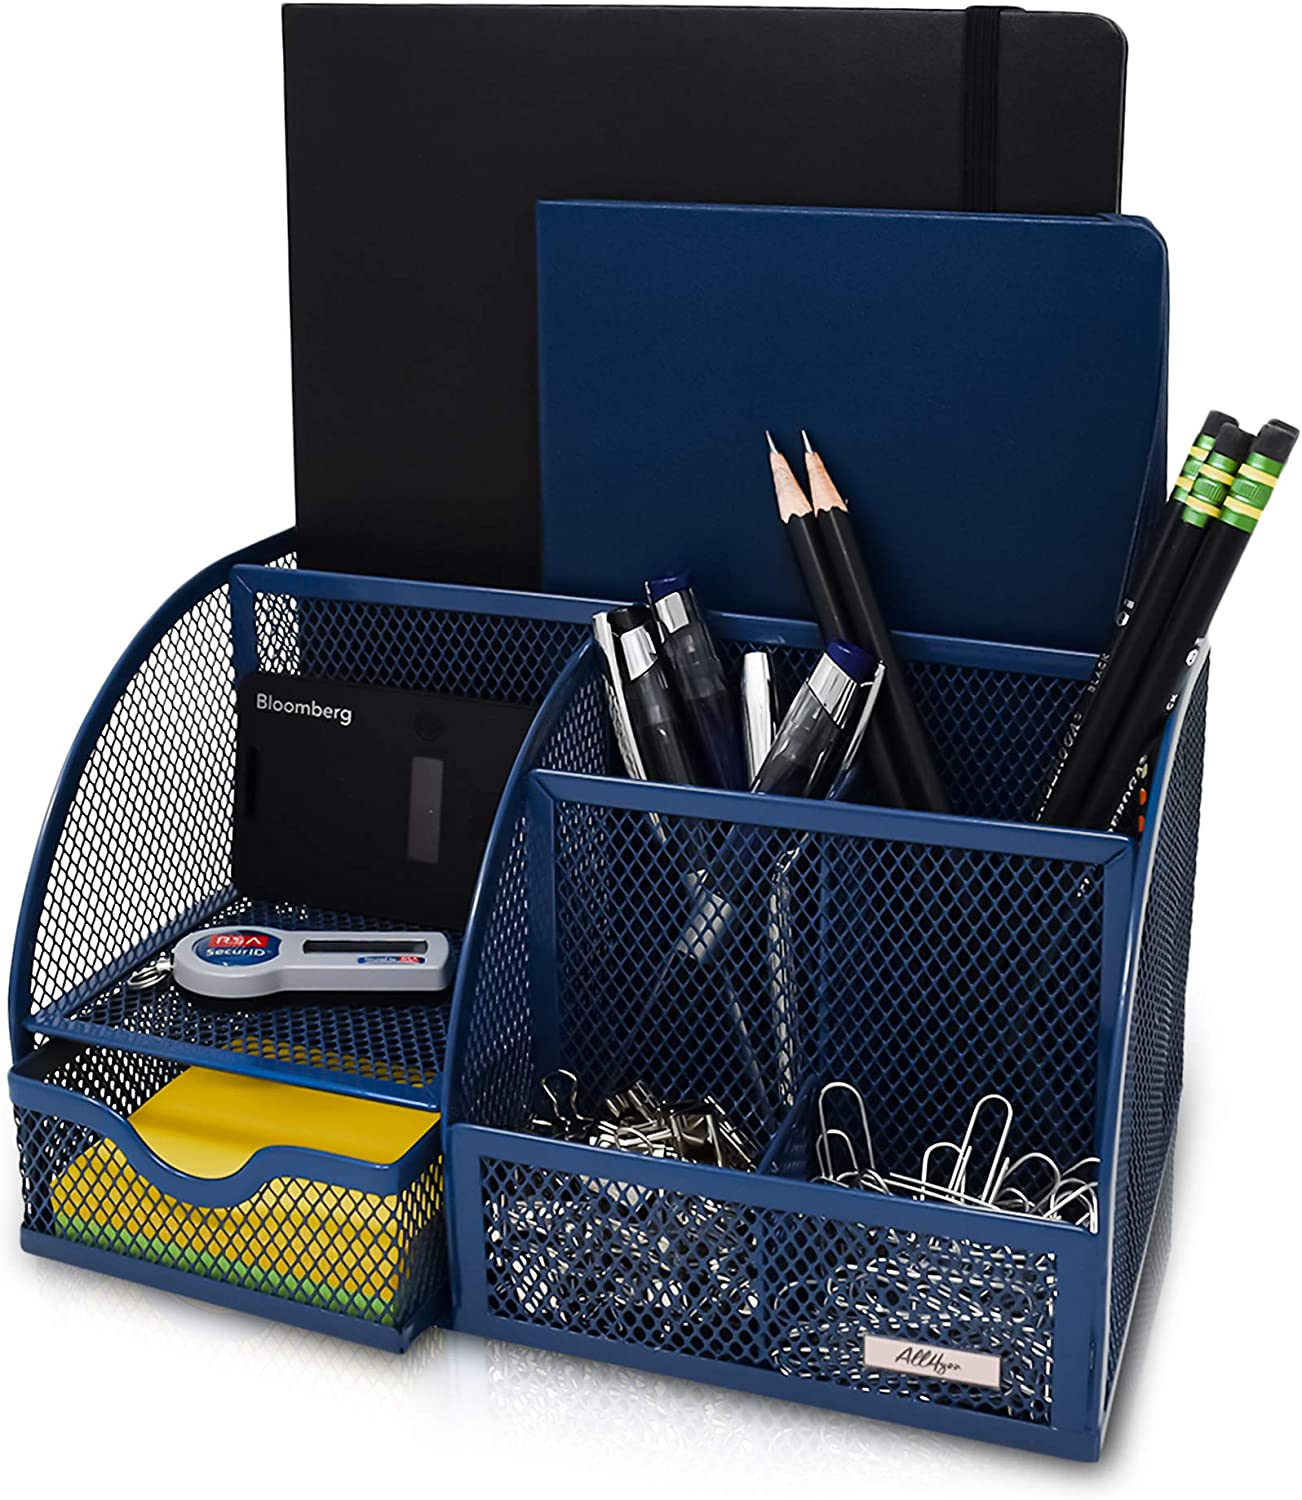 Desk Organizer All4You. Multi-Functional Mesh Desktop Organizer. Includes 6 compartments and a Drawer to Organize Desk Accessories, Mail, Pens, Tablets, Notebooks, and Office Supplies (Navy Blue)